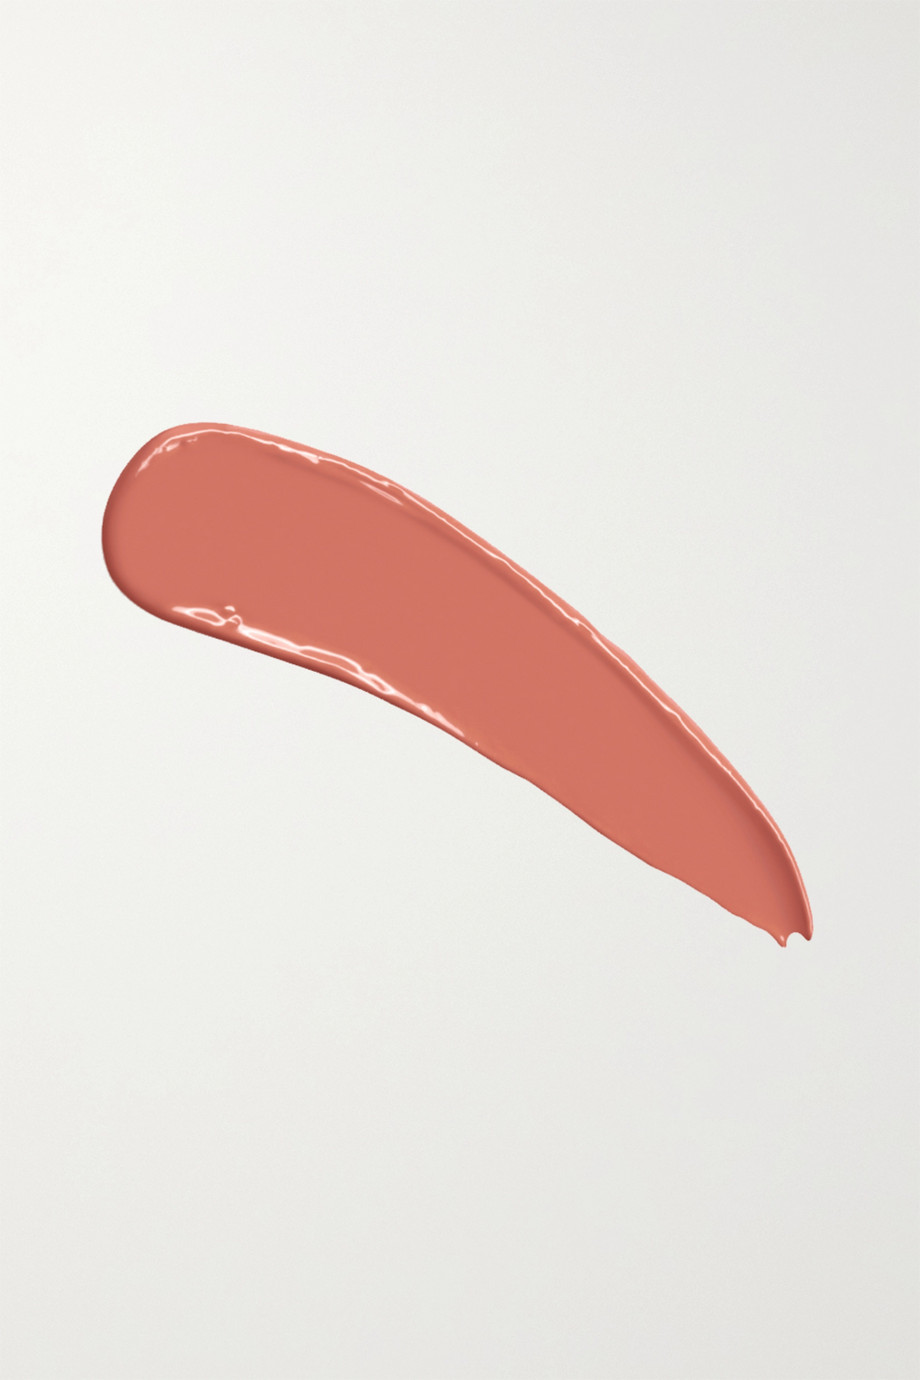 Charlotte Tilbury Recharge pour rouge à lèvres Hot Lips 2, JK Magic